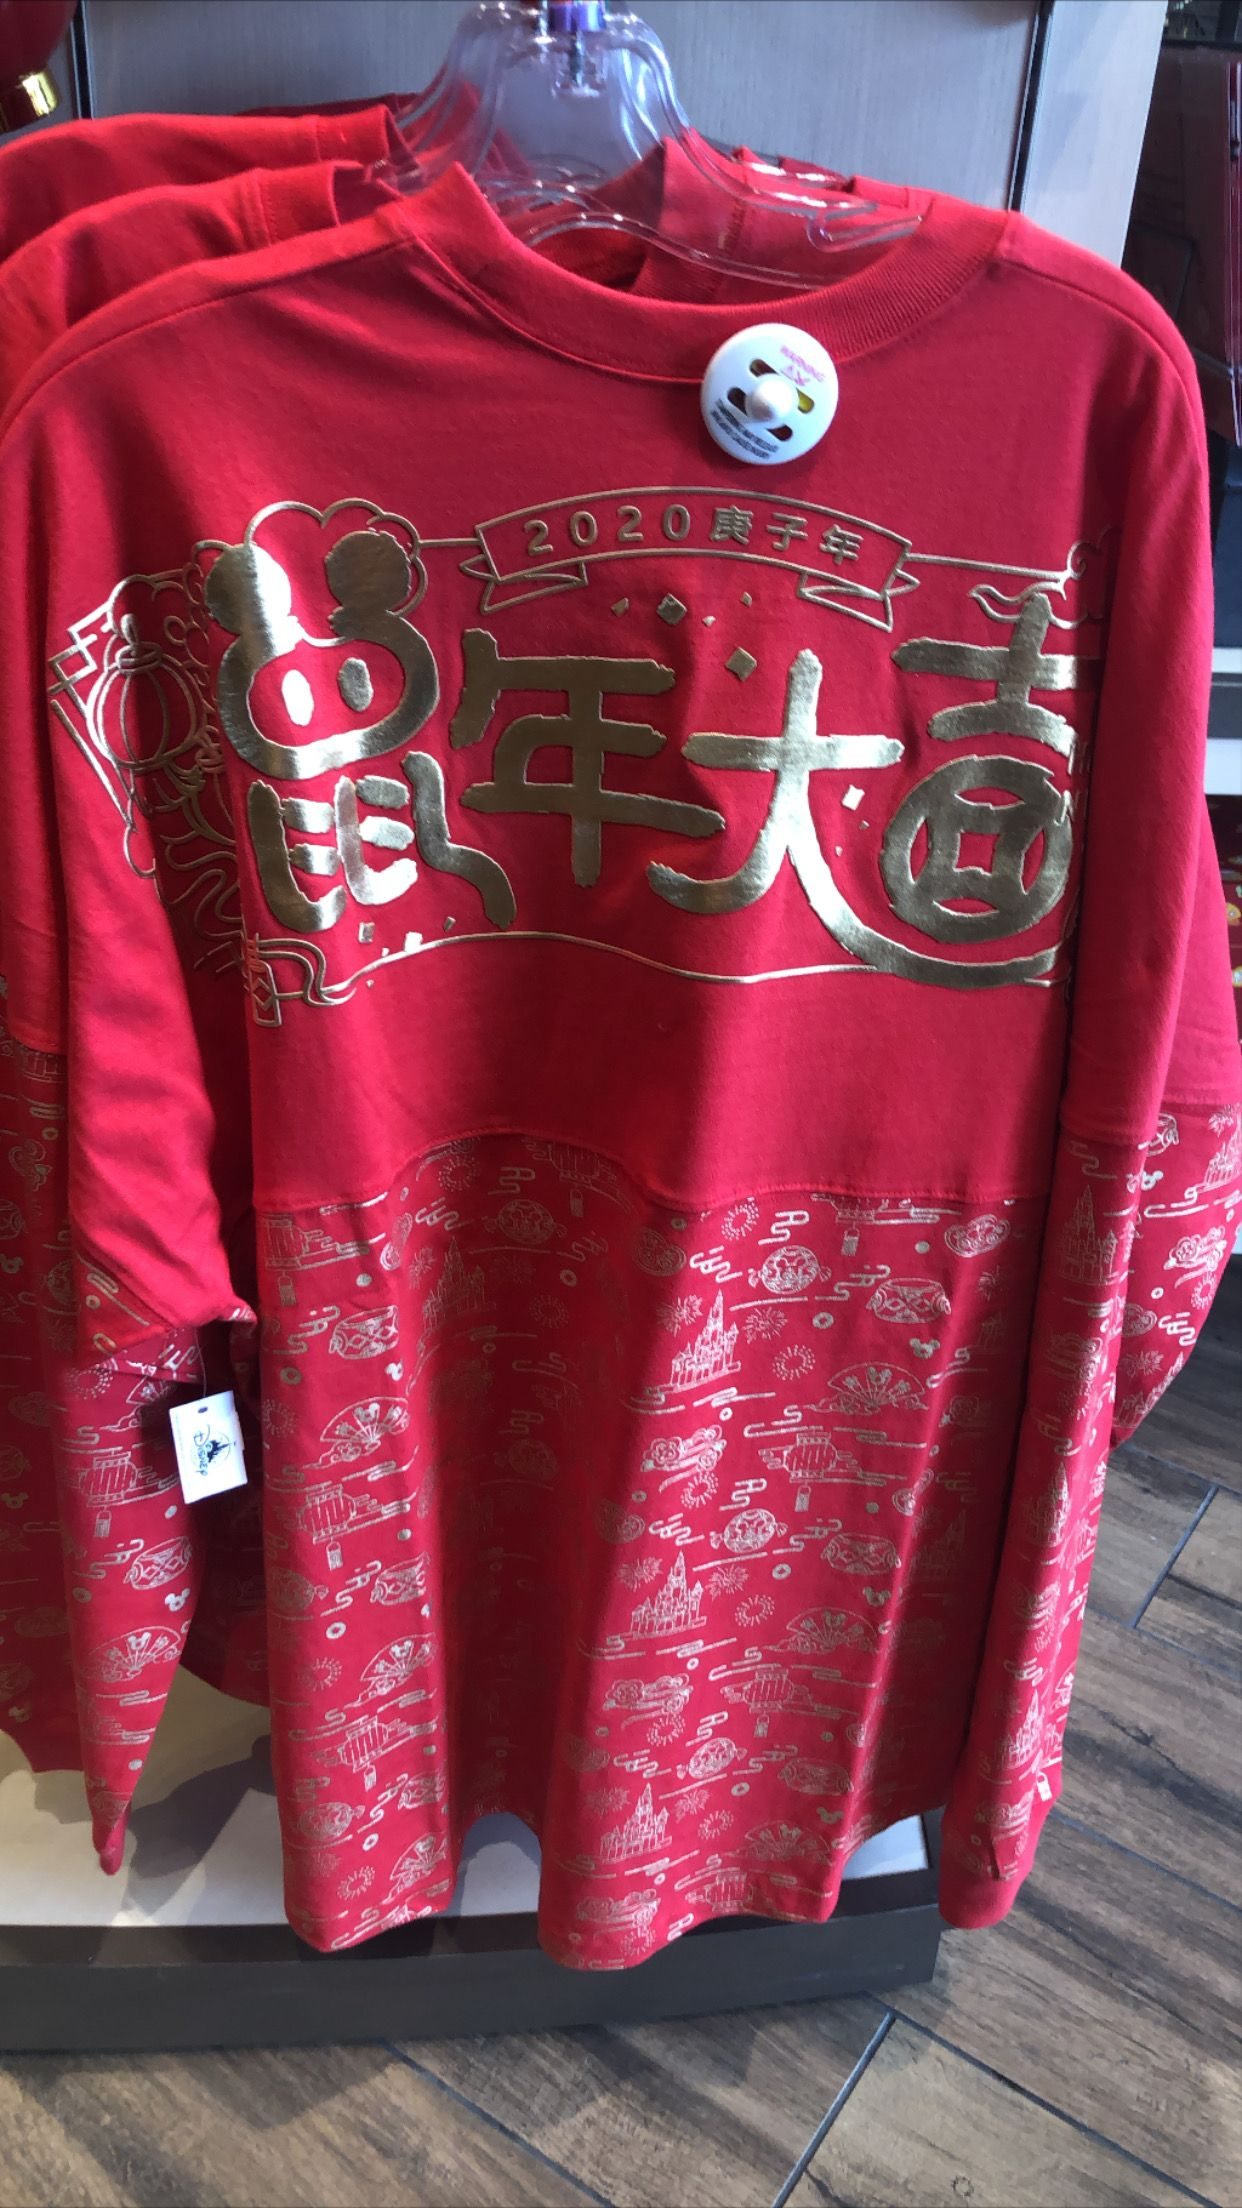 Disney Spirit Jersey For Chinese New Year In 2020 Spirit Jersey Chinese New Year 2020 Walt Disney World